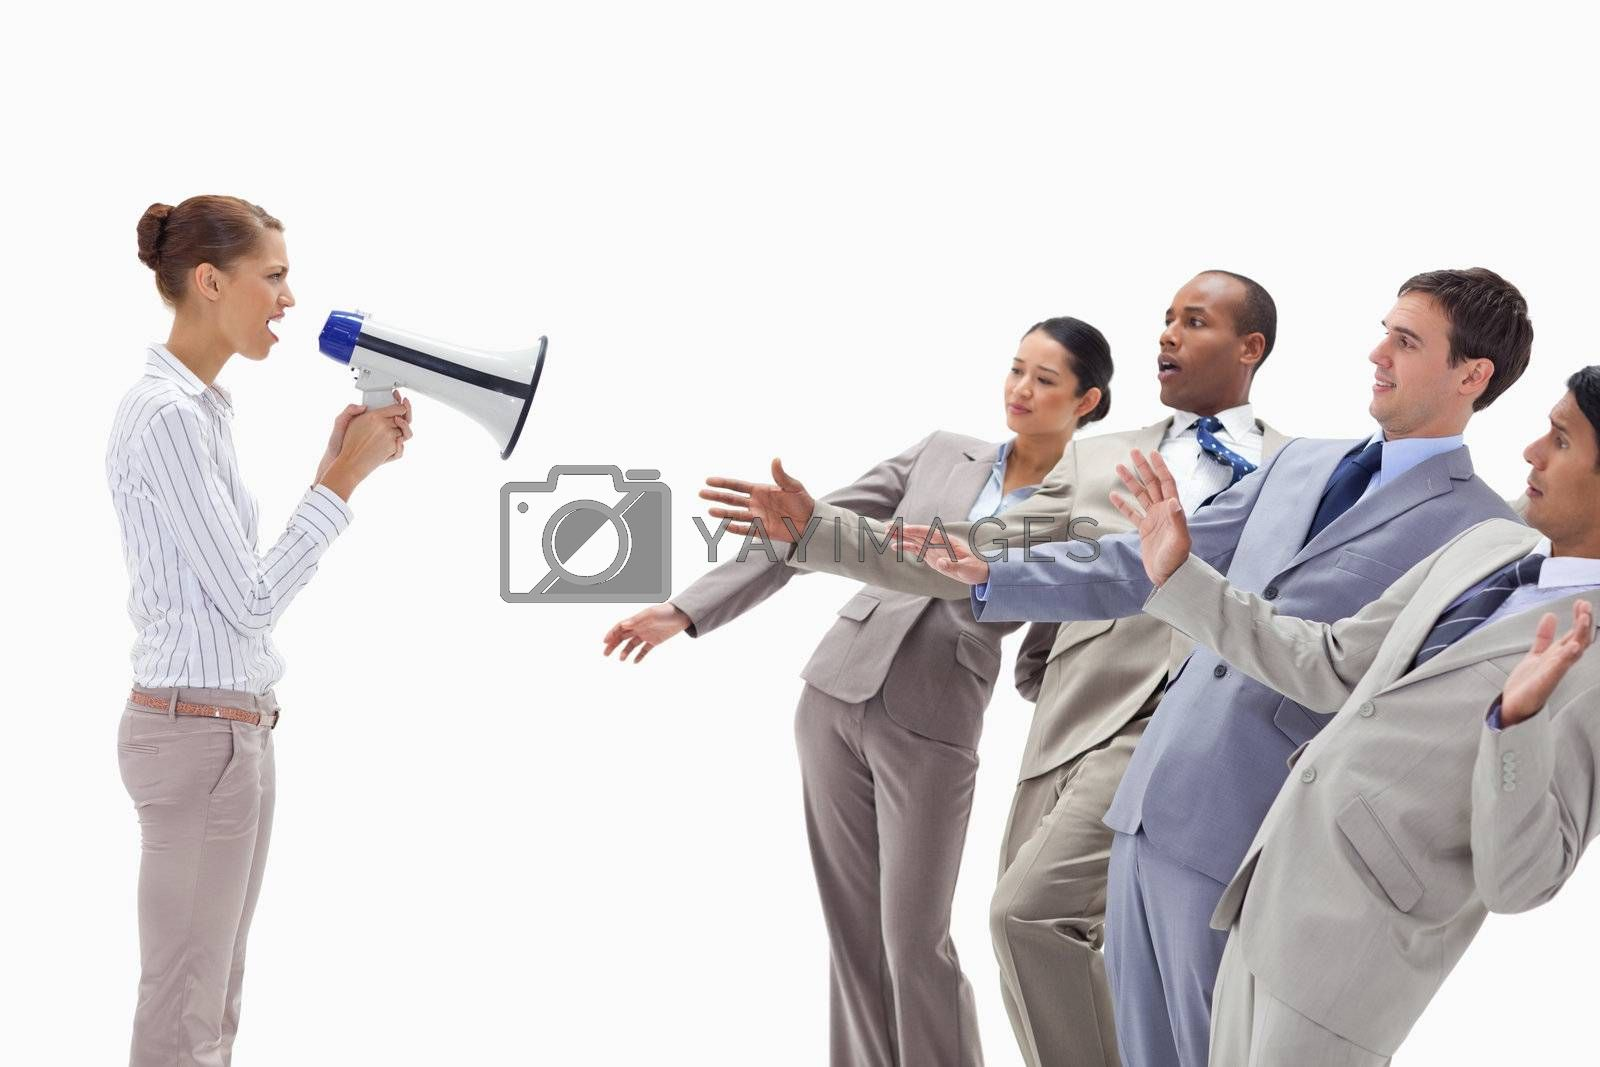 Woman yelling at people dressed in suits through a megaphone against white background